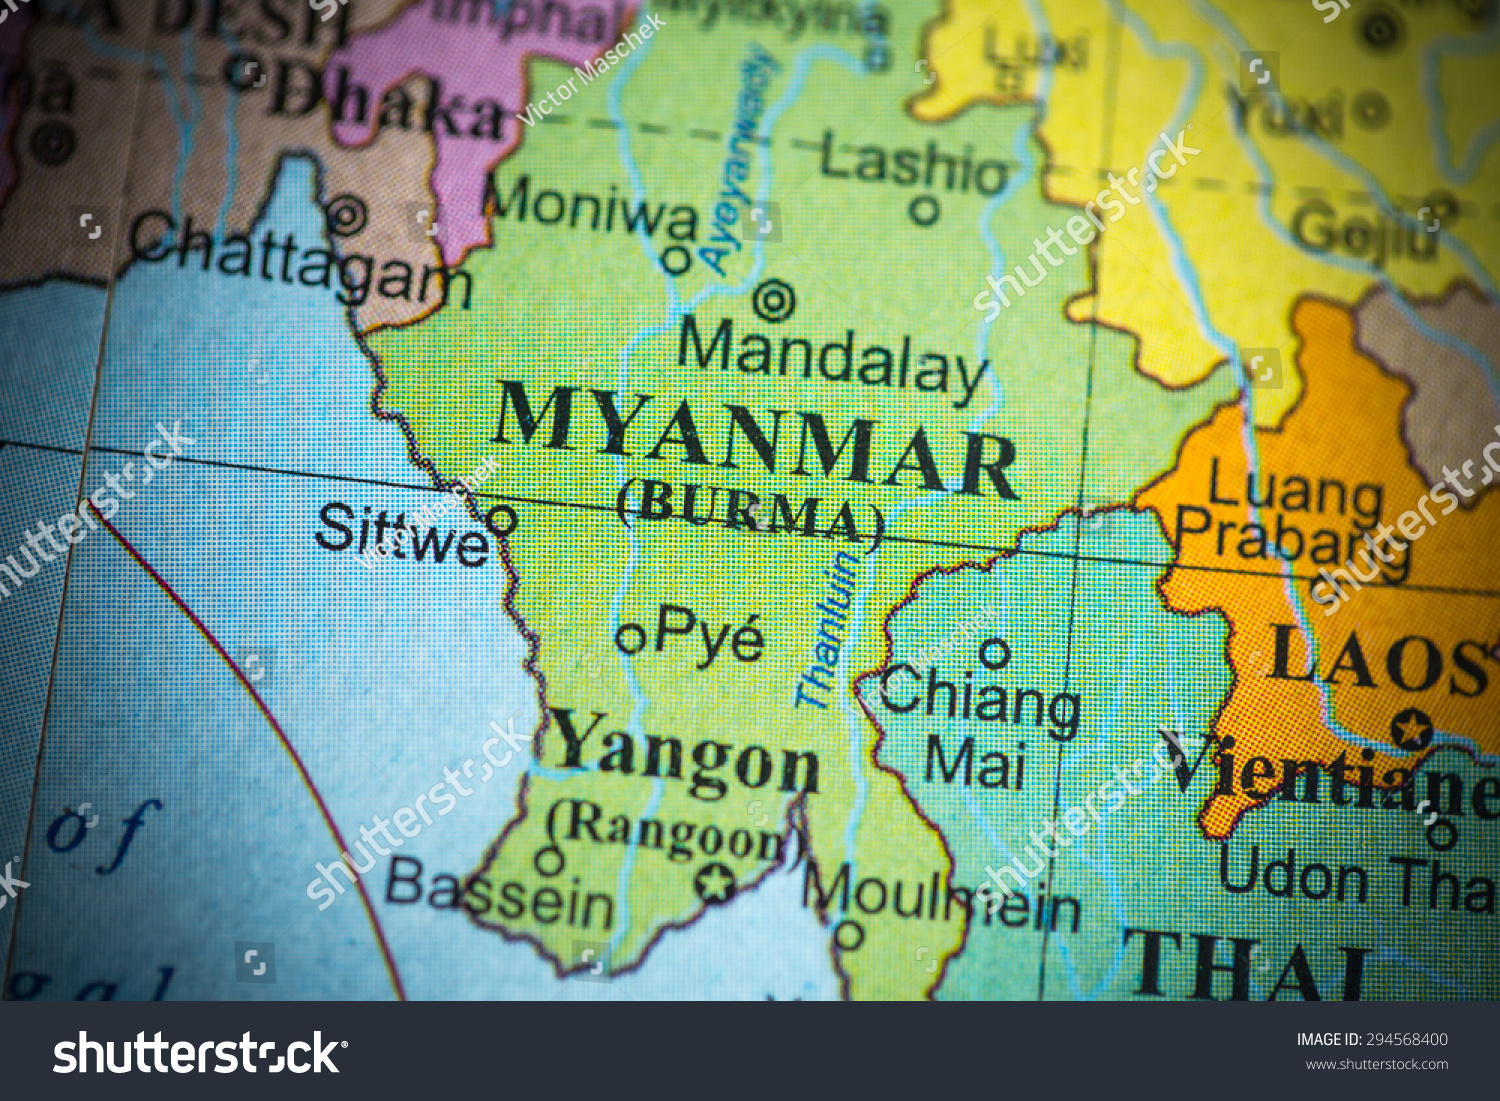 Map Of Spain Portugal%0A Map view of Myanmar on a geographical globe   vignette